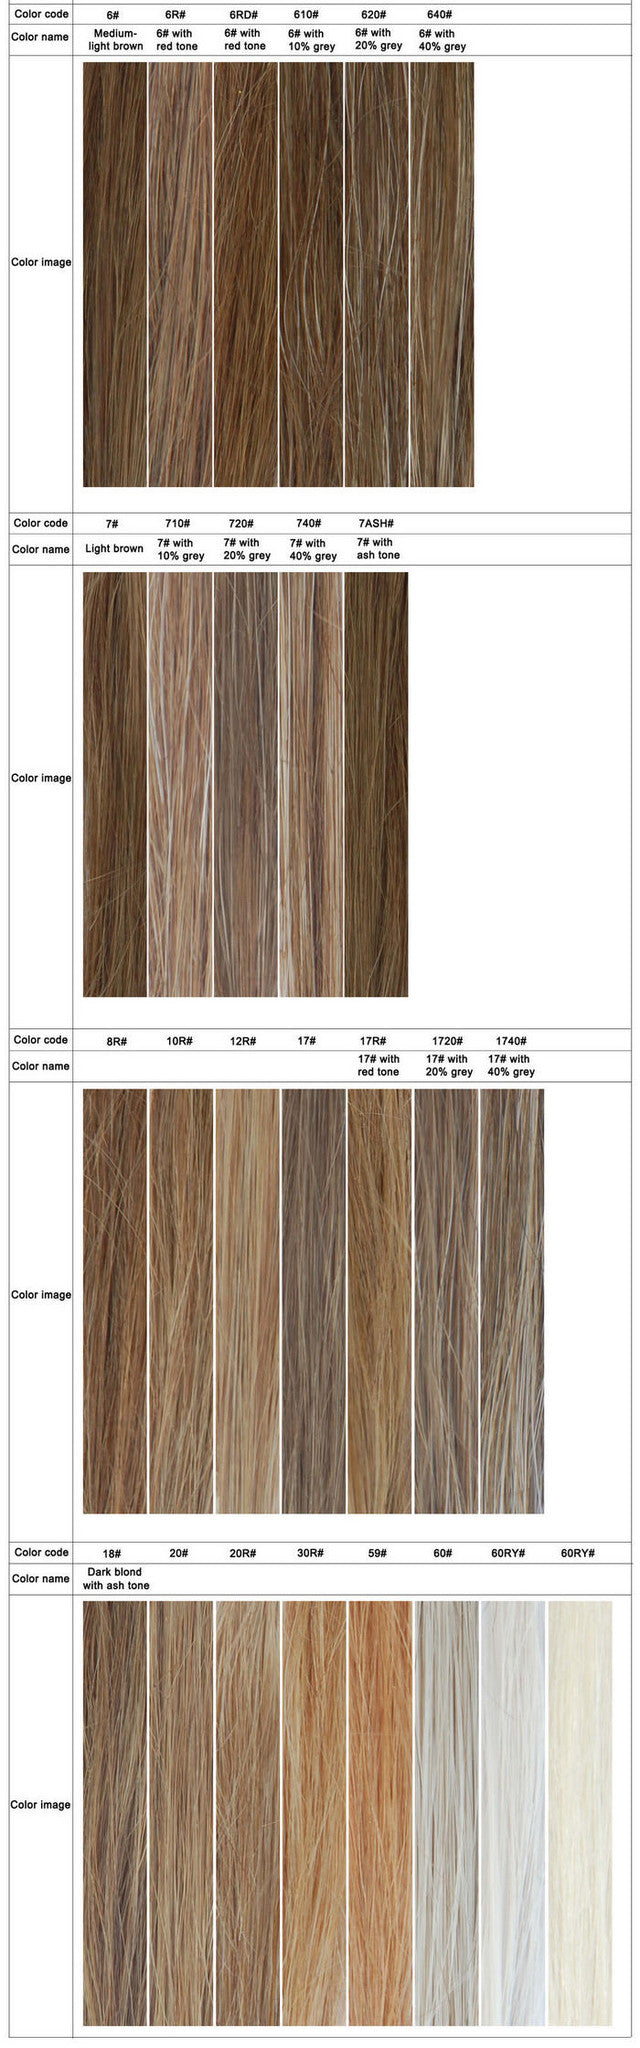 Hair replacement systems toupee for men color chart newhairline real hair replacement hair color chart just for reference geenschuldenfo Choice Image